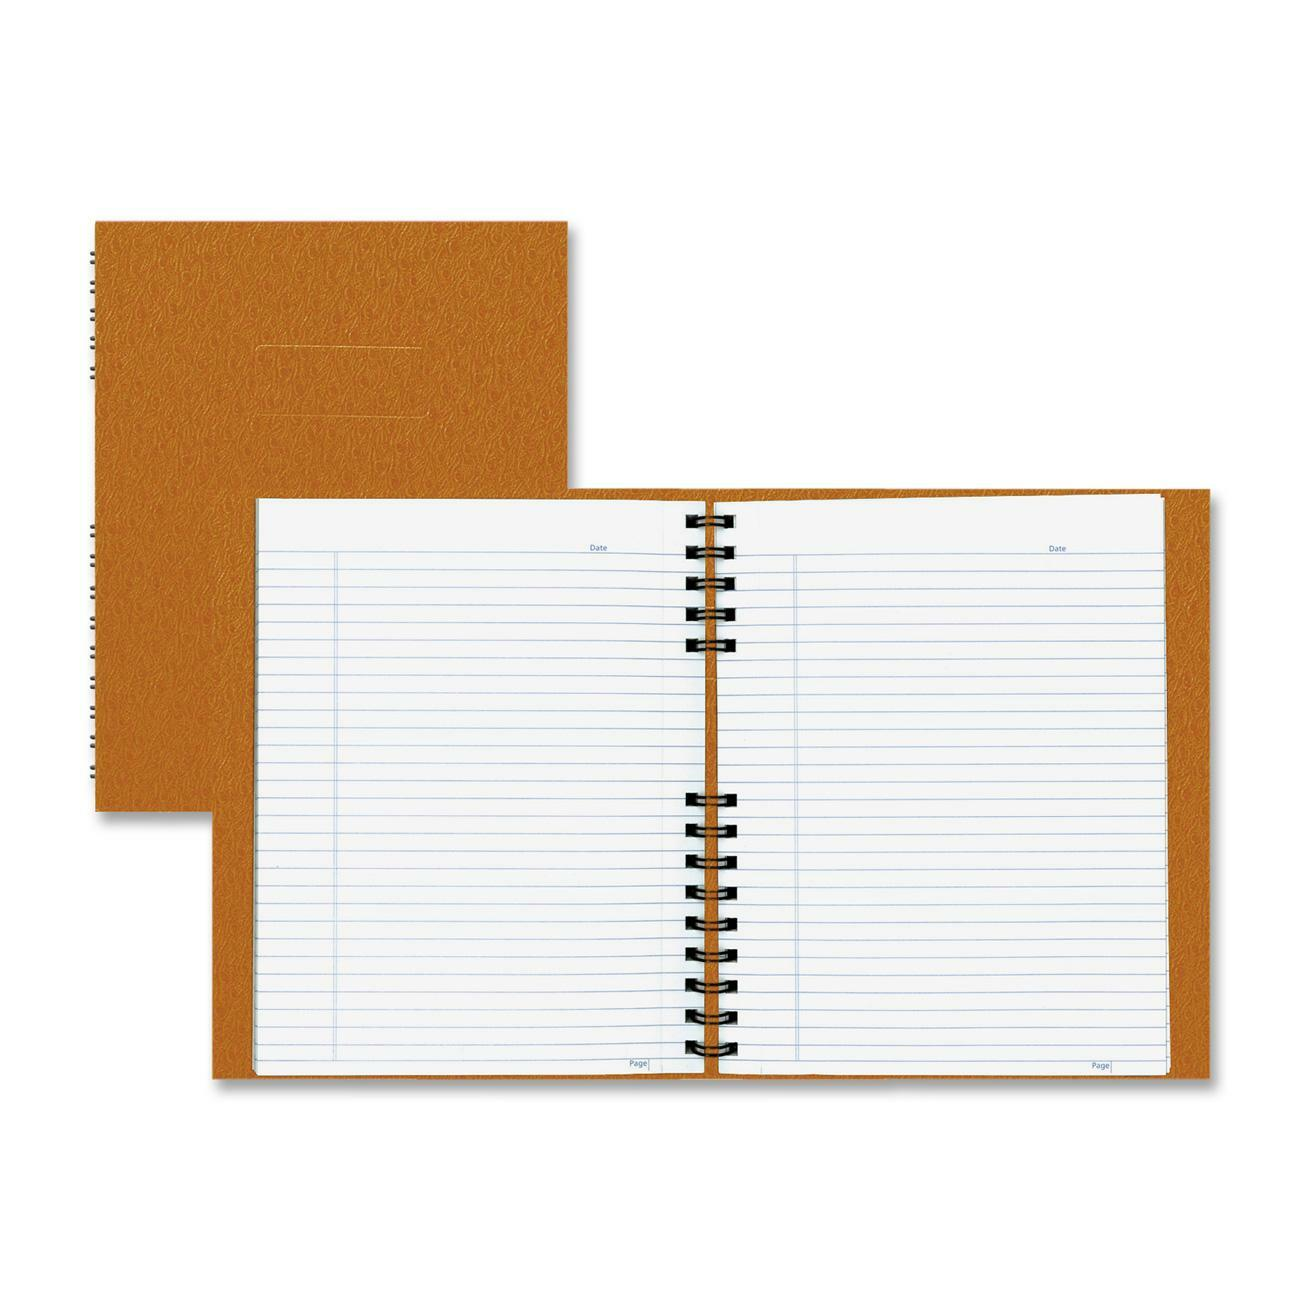 Rediform office products subject wirebound notebook wide - 192 Page Notebook With An Ostrich Like Cover Is Twin Wire Bound To Allow The Book To Lie Flat On Your Desk For Easy Handwriting